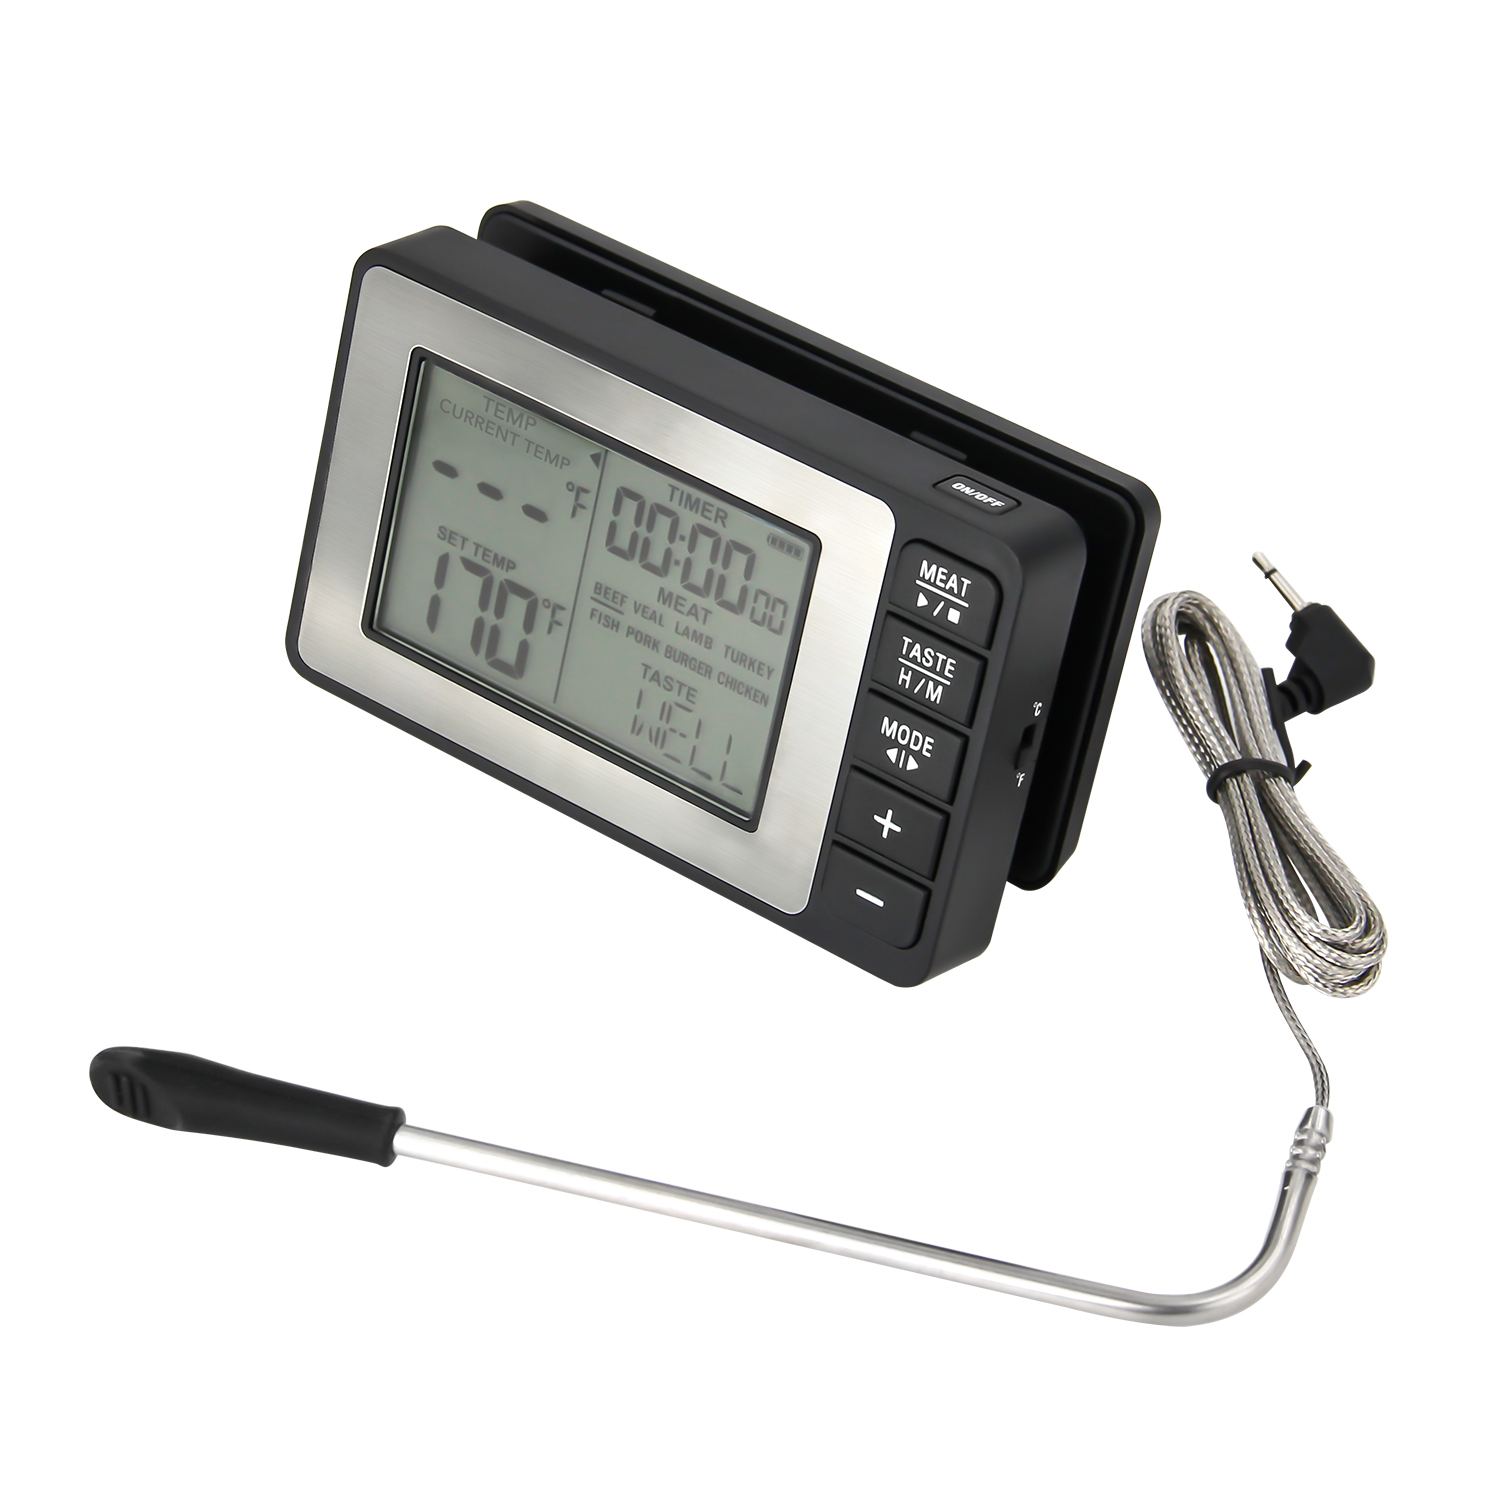 China Bluetooth Thermometer Manufacturer